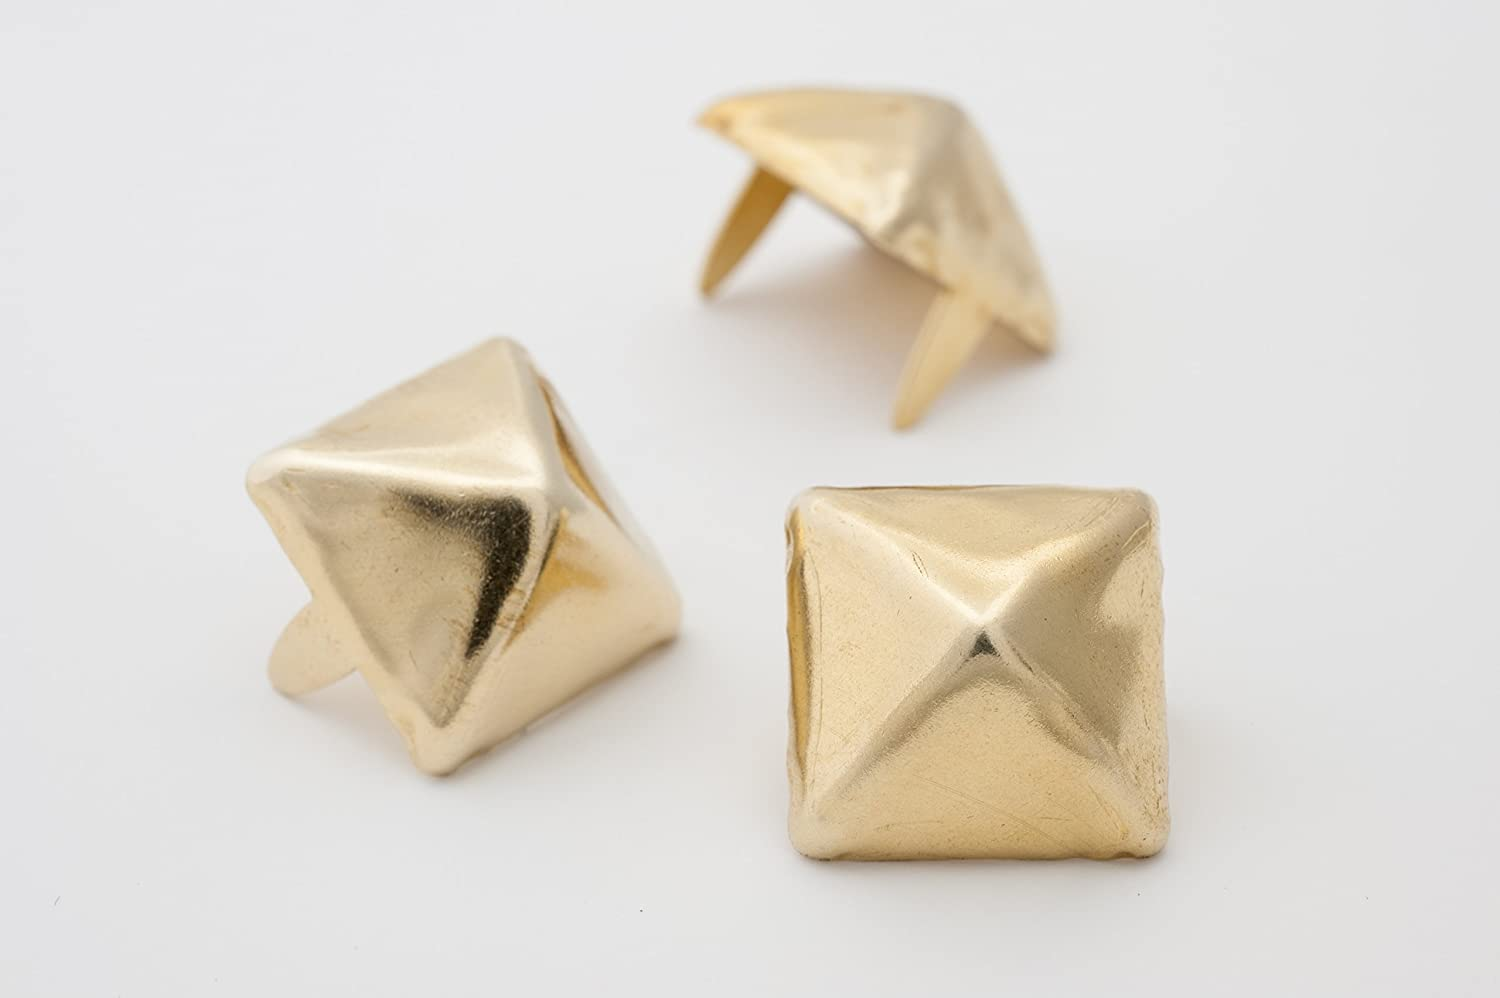 Large Pyramid Studs - Size 16 - Ideally used for Denim and Leather Work - Classic Two-Prong Studs - Available in Golden Color - Pack of 50 StudsAndSpikes